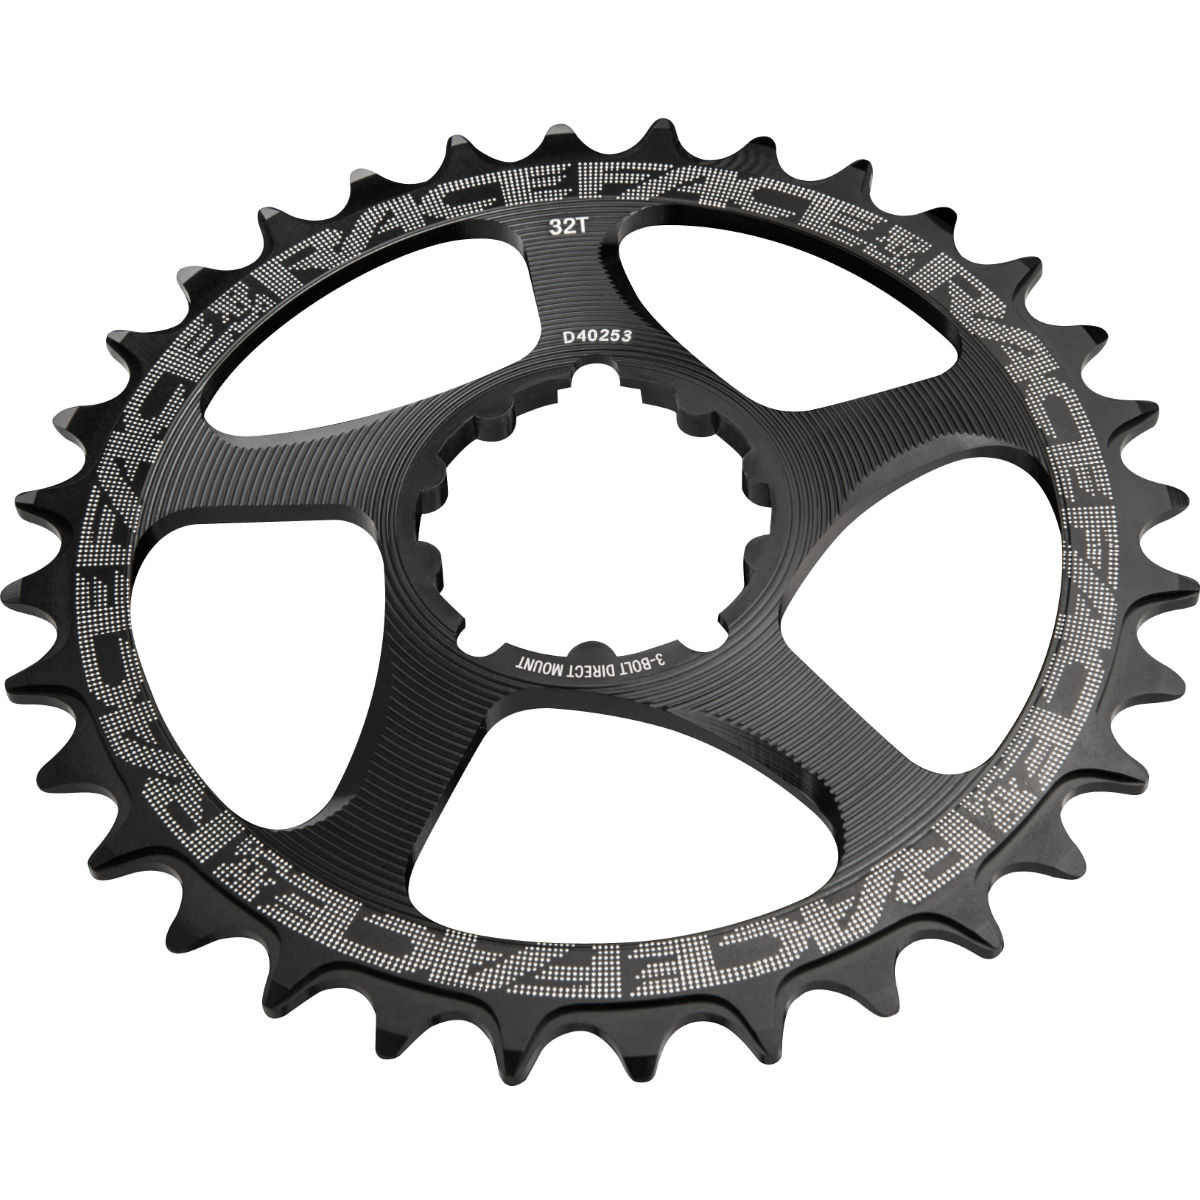 Race Face Direct Mount Sram Narrow/wide Single Chainring - 36t Black